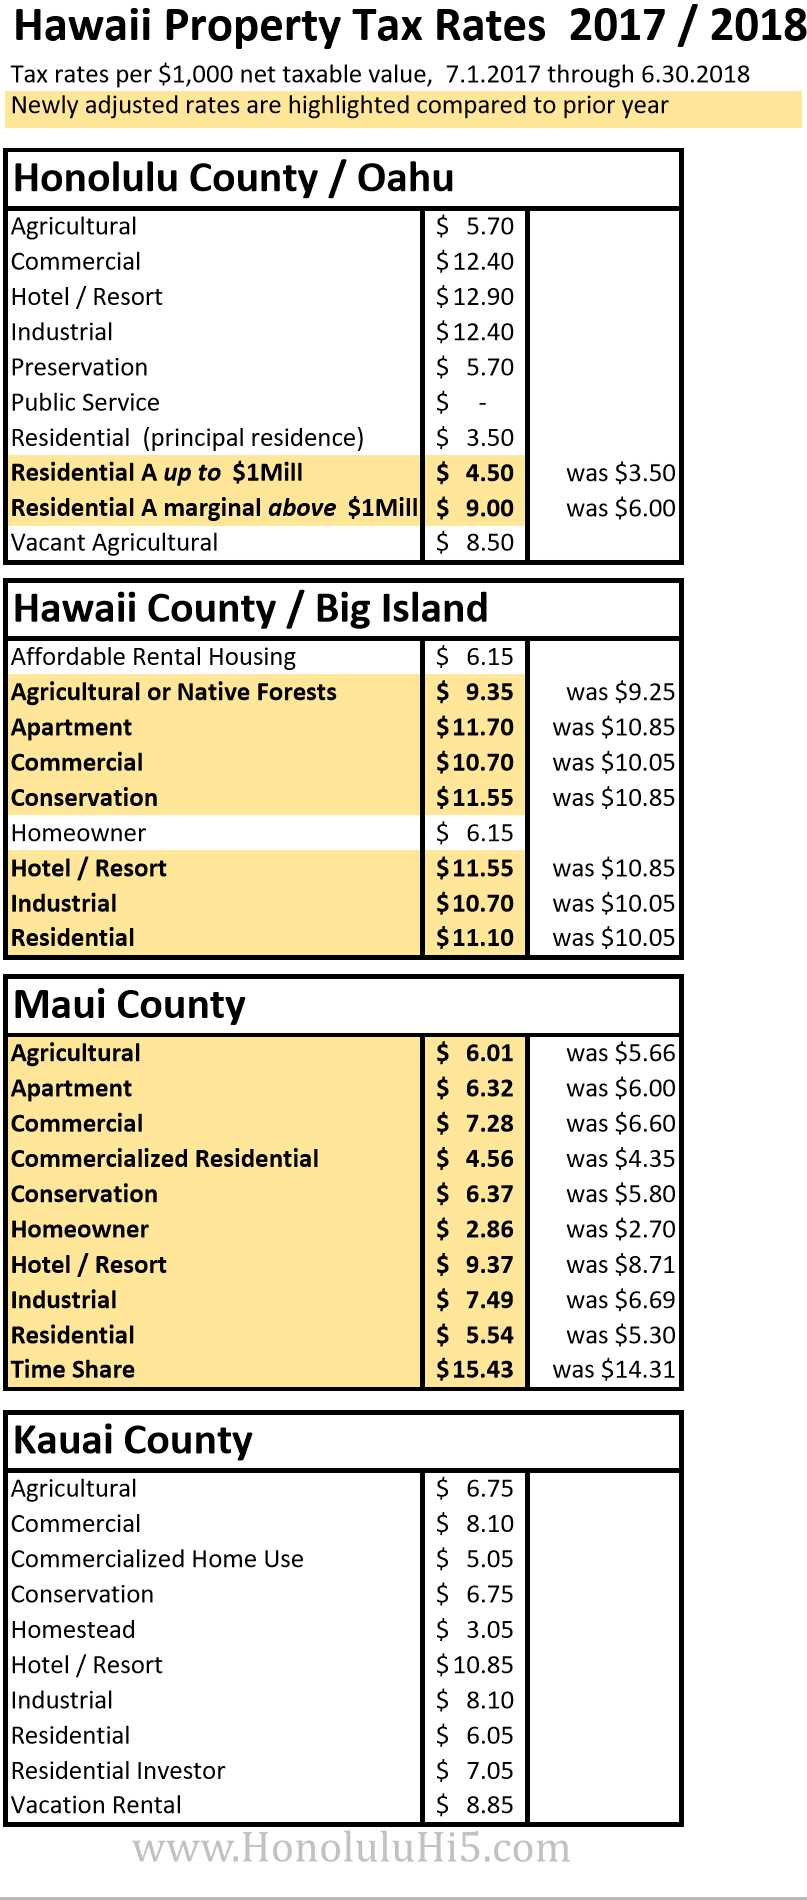 New Hawaii Property Tax Rate Schedule 2017 - 2018